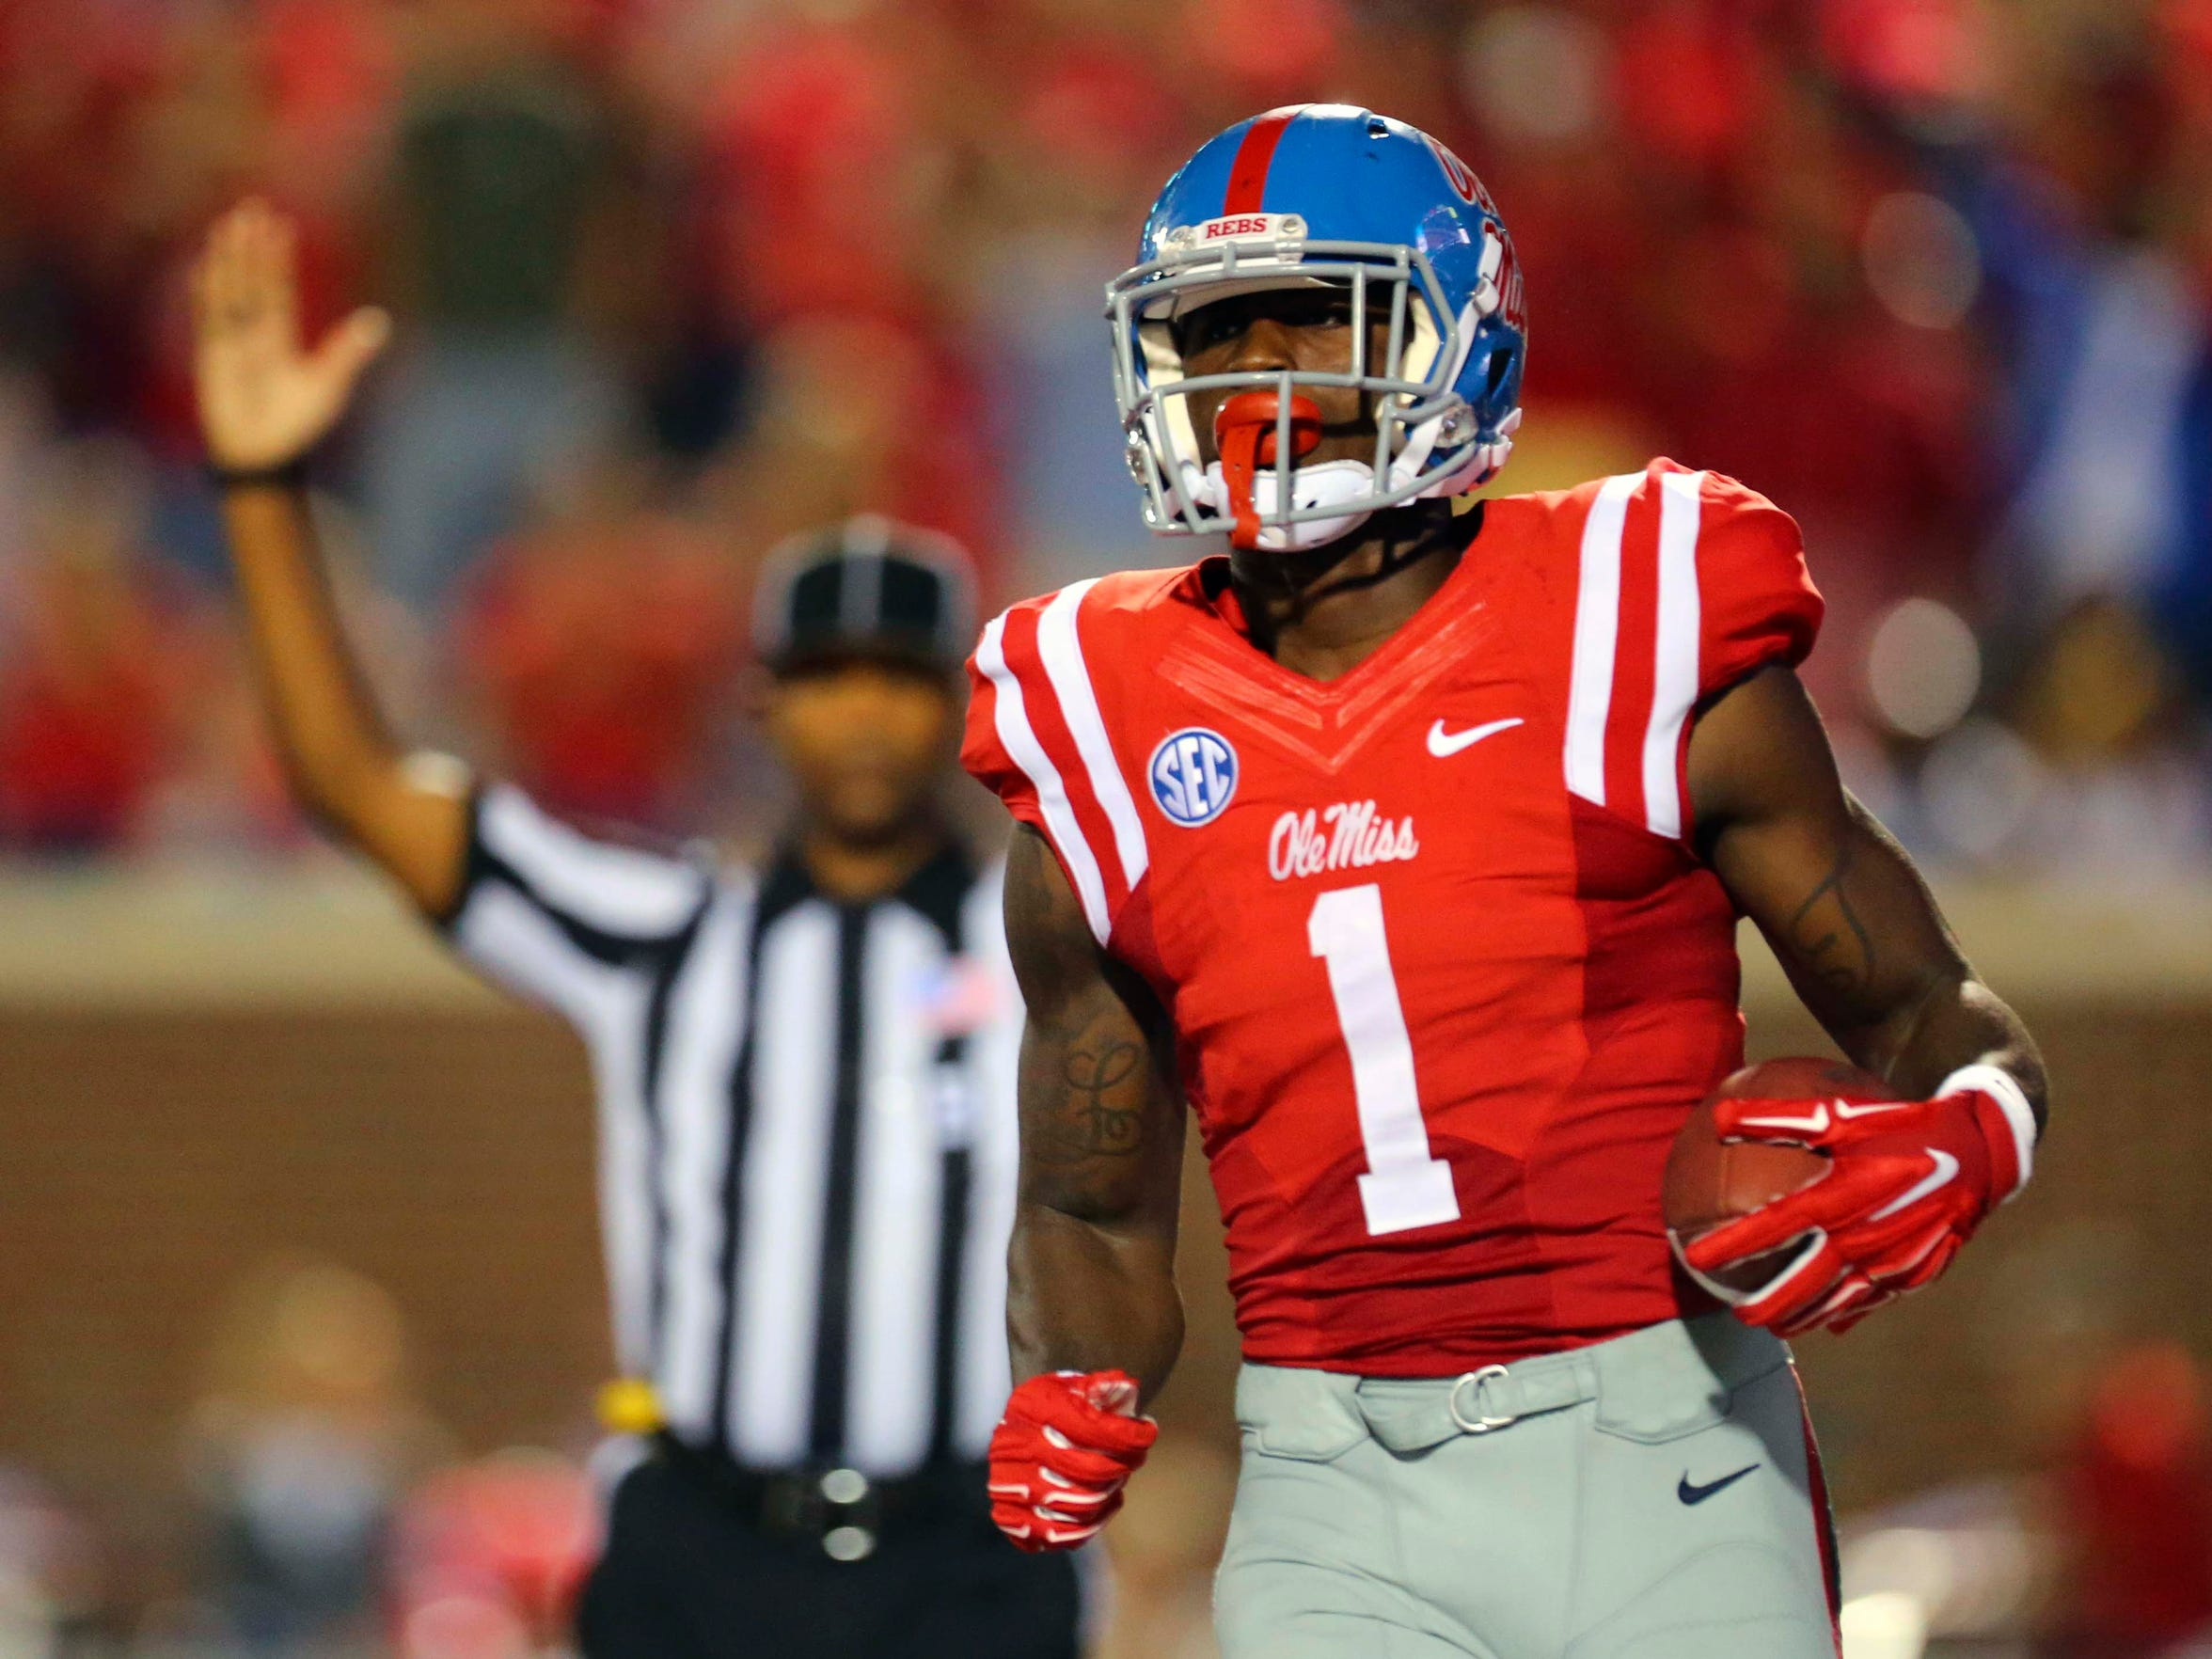 Mississippi wide receiver Laquon Treadwell (1)